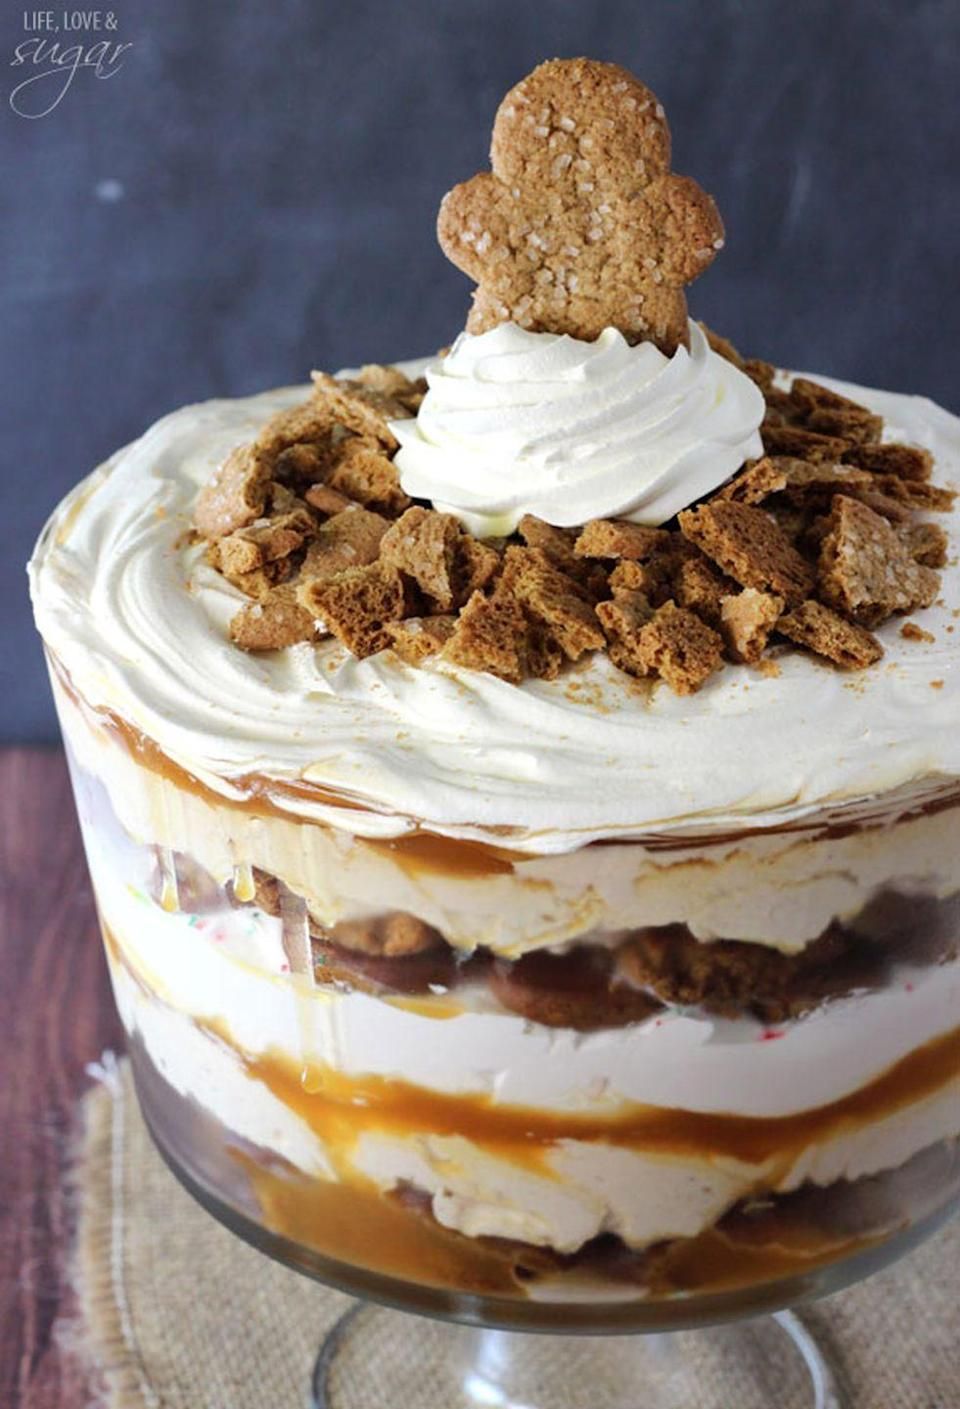 """<p>This holiday dessert is loaded with gingerbread cookies, a gingerbread cheese cake filling, <em>and </em>caramel sauce.</p><p><strong>Get the recipe at <a href=""""https://www.lifeloveandsugar.com/2014/12/10/gingerbread-cheesecake-trifle/"""" rel=""""nofollow noopener"""" target=""""_blank"""" data-ylk=""""slk:Life, Love and Sugar"""" class=""""link rapid-noclick-resp"""">Life, Love and Sugar</a>.</strong></p><p><a class=""""link rapid-noclick-resp"""" href=""""https://www.amazon.com/dp/B07FYBDTXS?tag=syn-yahoo-20&ascsubtag=%5Bartid%7C10050.g.2721%5Bsrc%7Cyahoo-us"""" rel=""""nofollow noopener"""" target=""""_blank"""" data-ylk=""""slk:SHOP HAND MIXERS"""">SHOP HAND MIXERS</a></p>"""